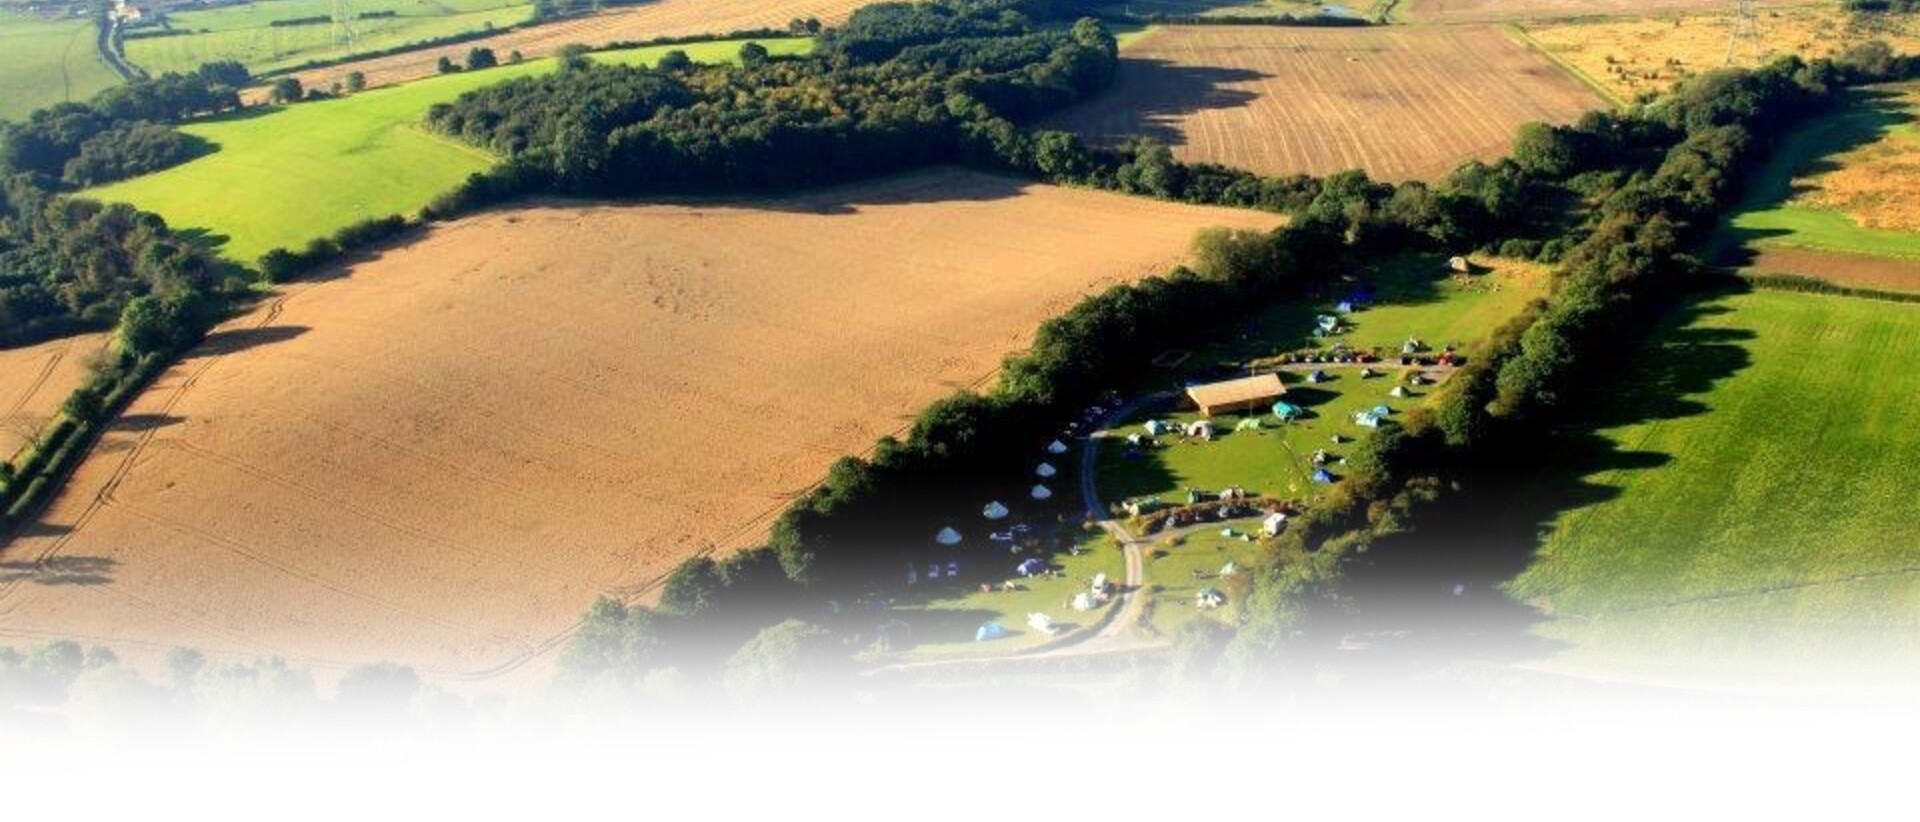 The Hideaway at Baxby Manor Aerial View Surrounding Fields